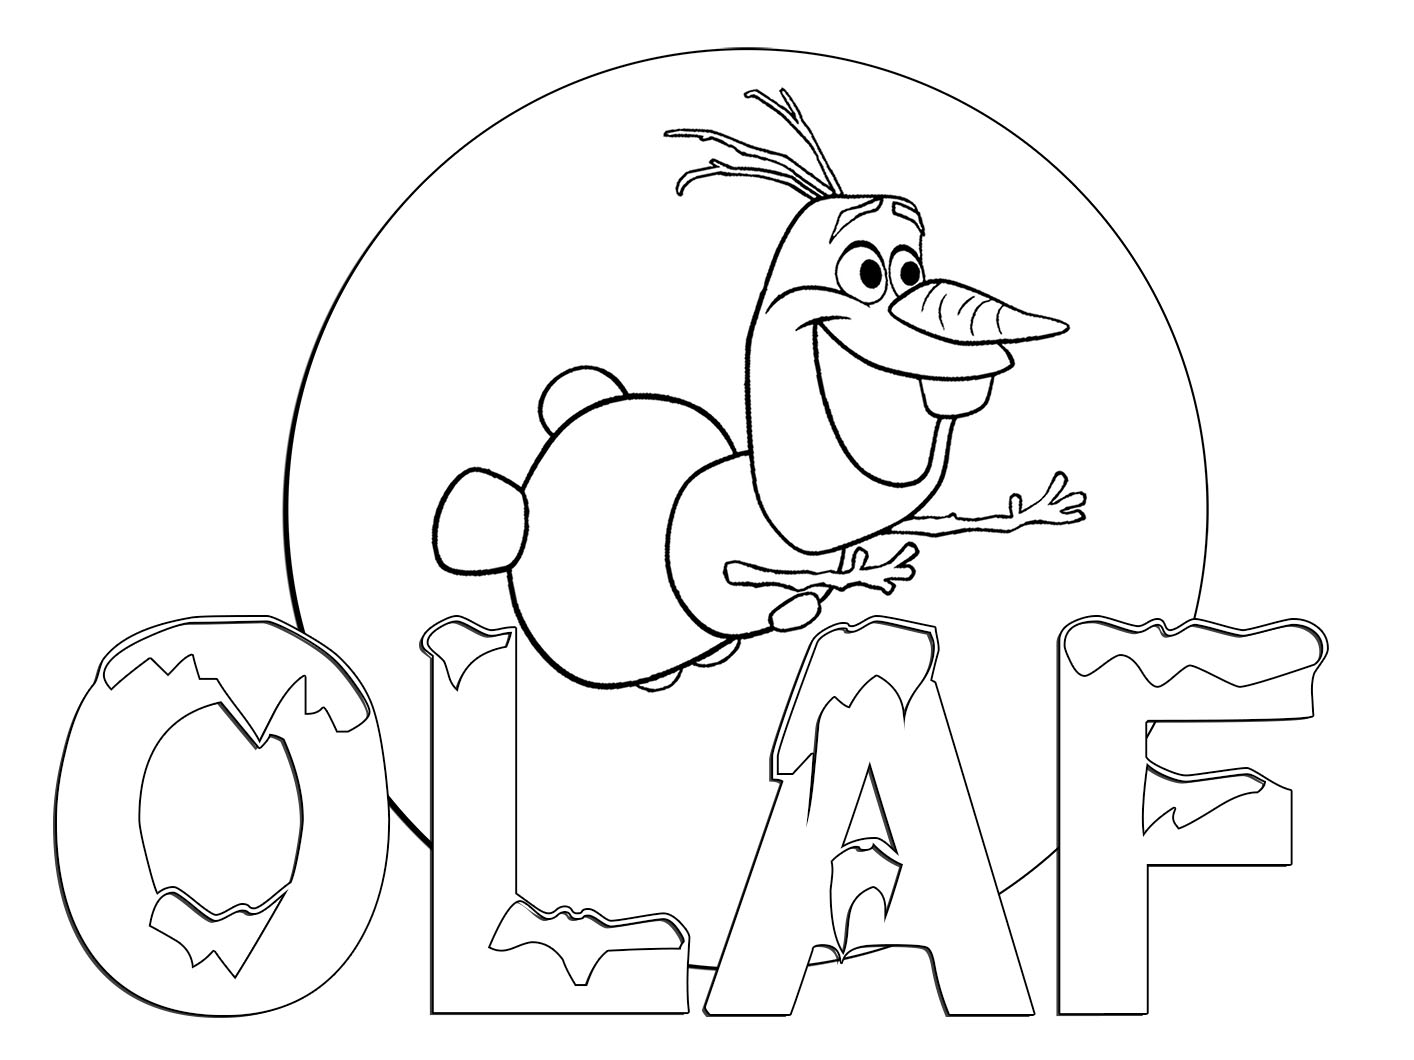 frozen olaf coloring pages 1000 images about neat stuff n drawings on pinterest frozen pages coloring olaf